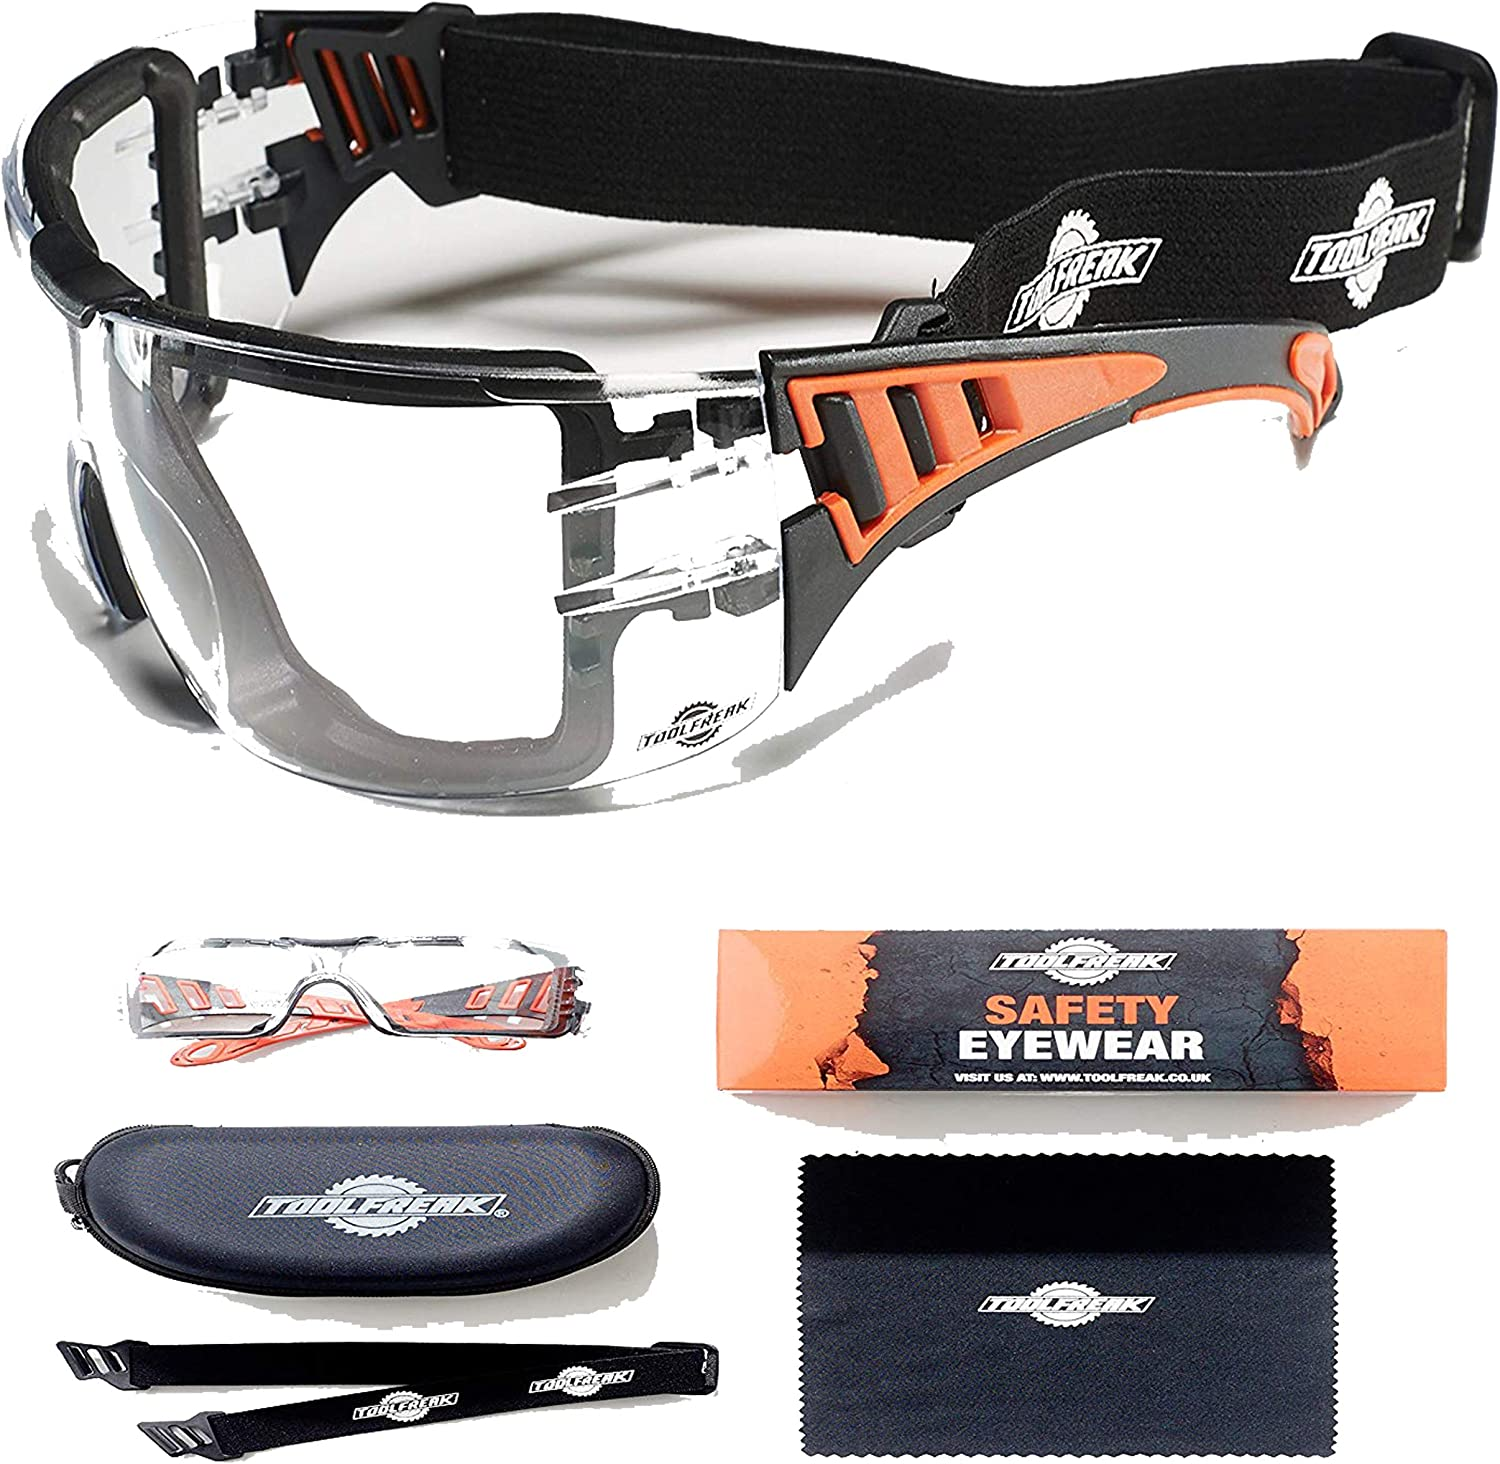 Eyewear Foam Padded for Comfort and Better Protection ToolFreak-Spoggles,Safety Glasses /& Protective Goggles Smoke Tinted Lens with Impact /& UV Protection ANSI Z87 Rated